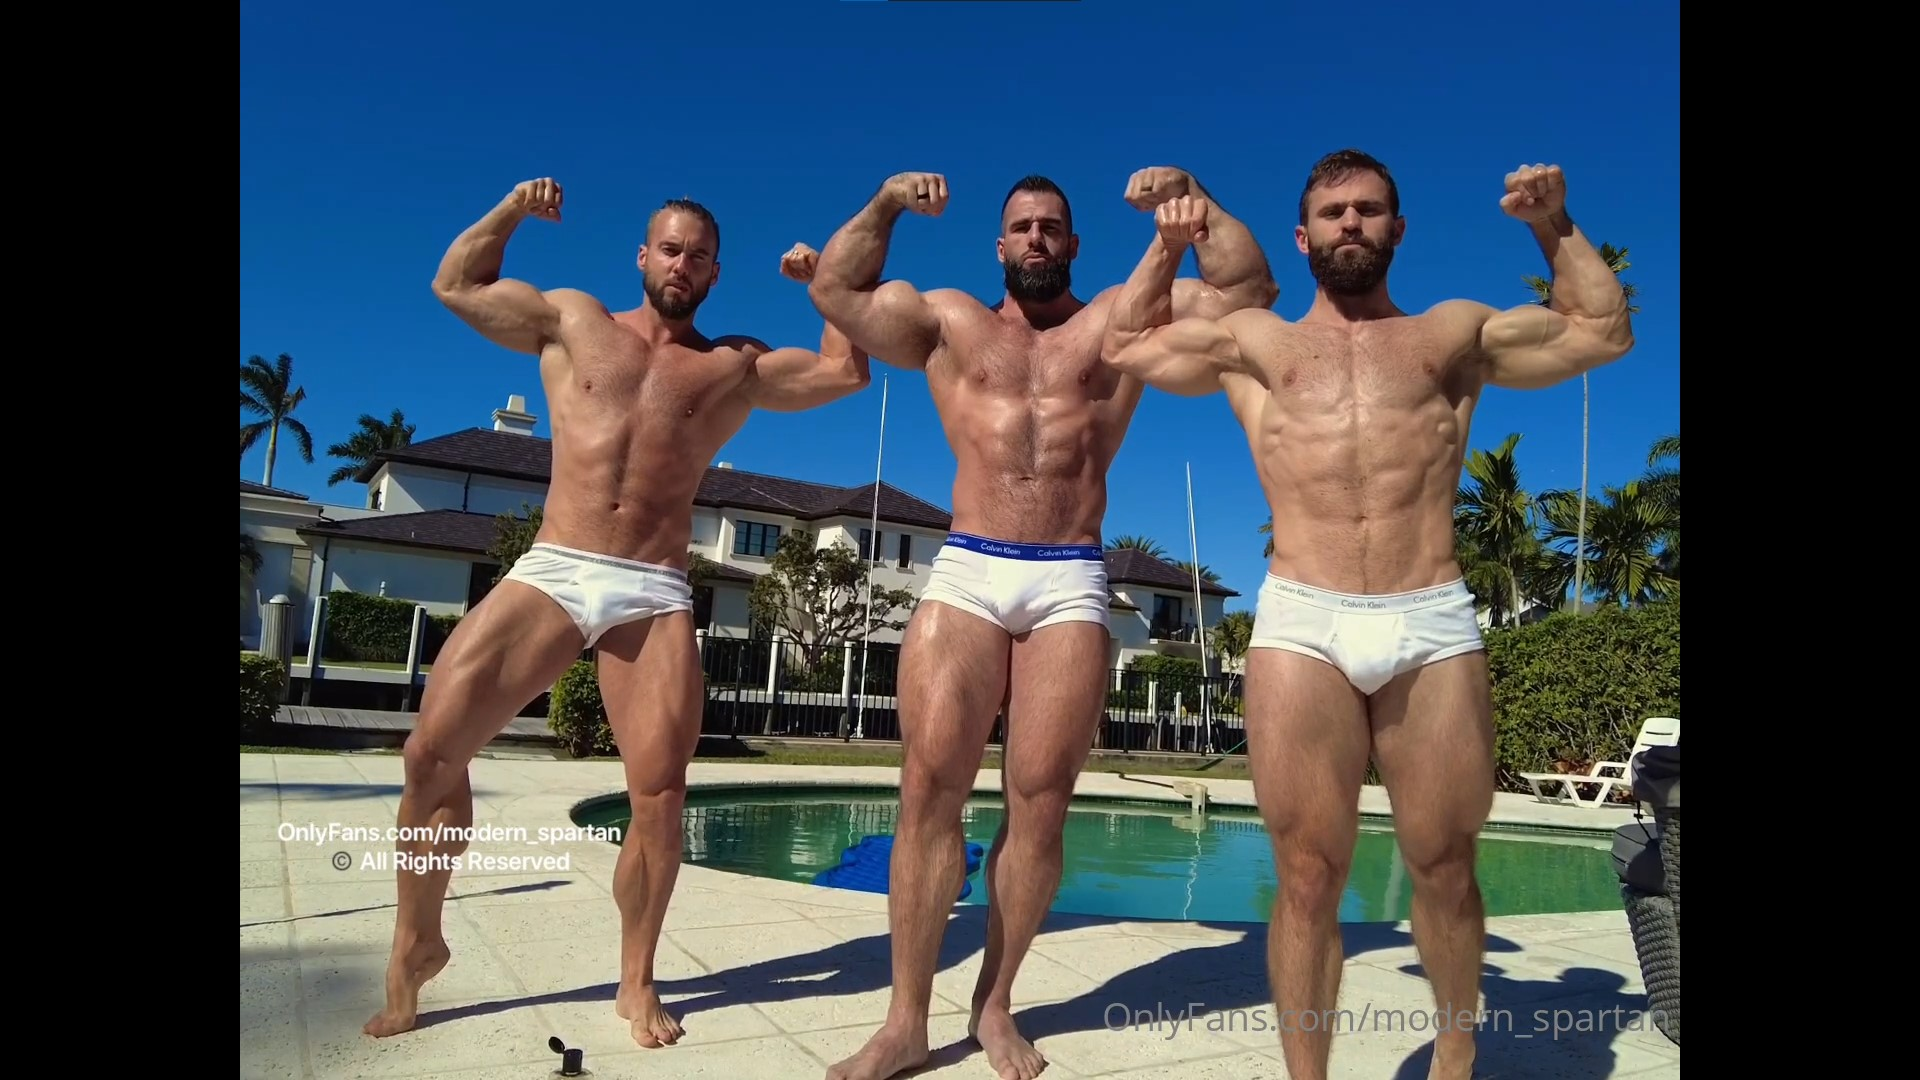 Getting rubbed down by two muscle hunks and flexing together - Nick Pulos (modern_spartan)